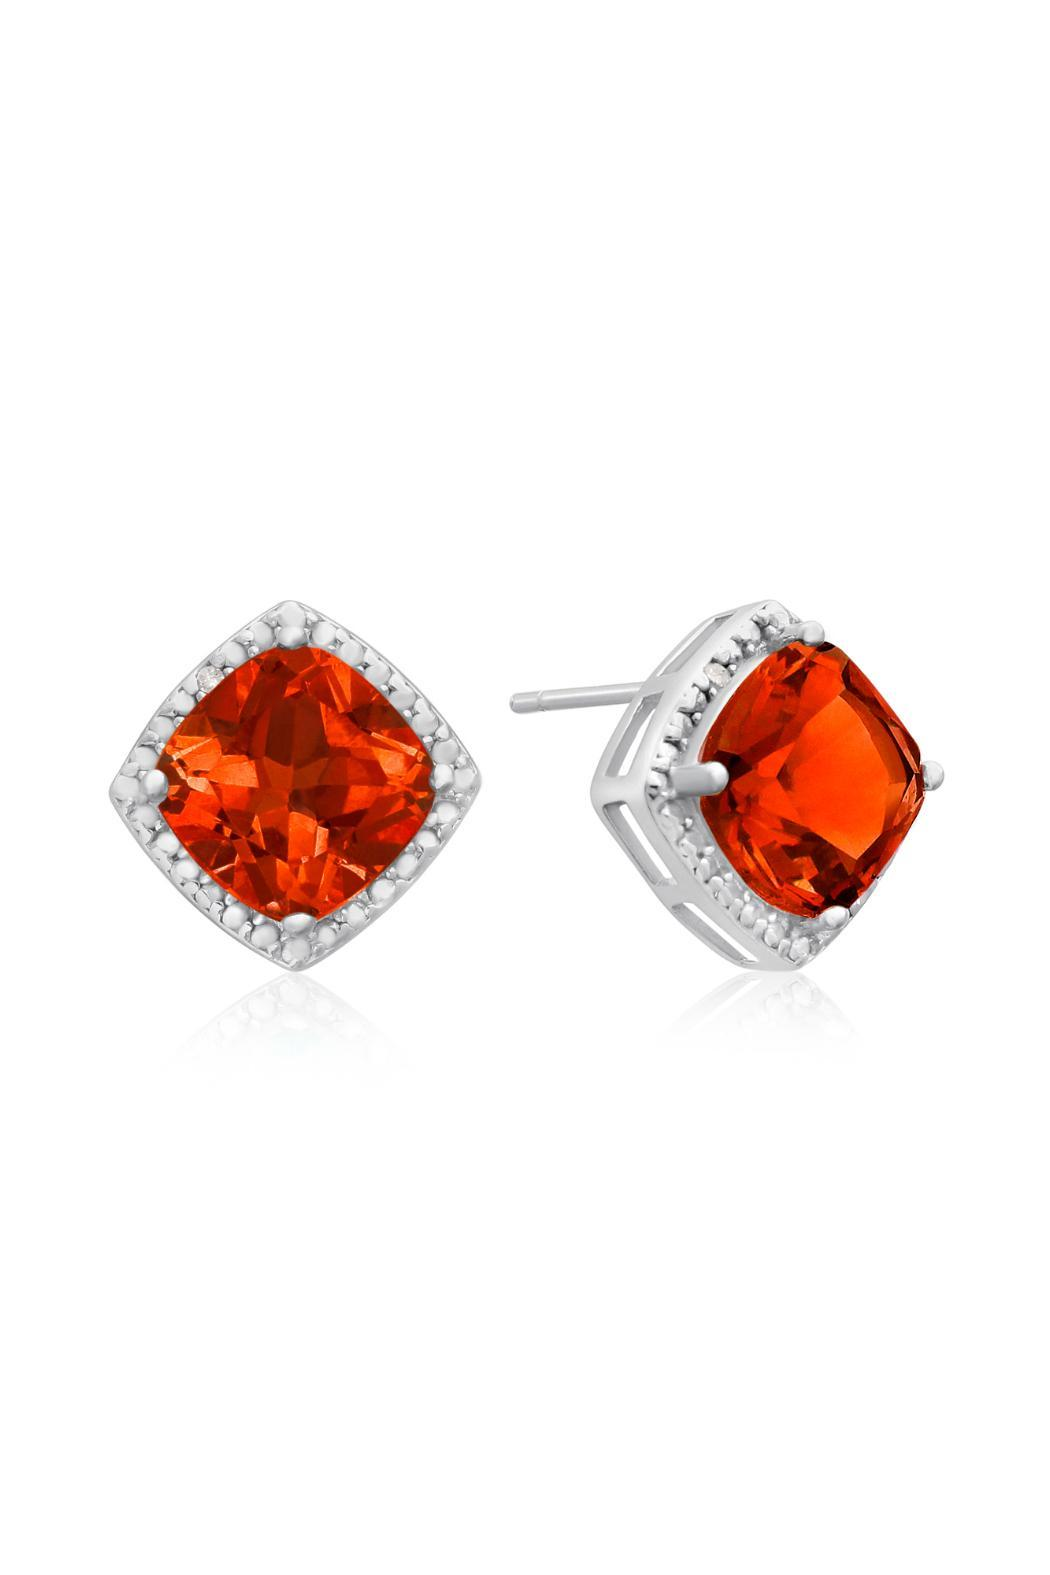 pin anniversary orange gave sapphire earrings ring gift padparadscha jim me last the match they